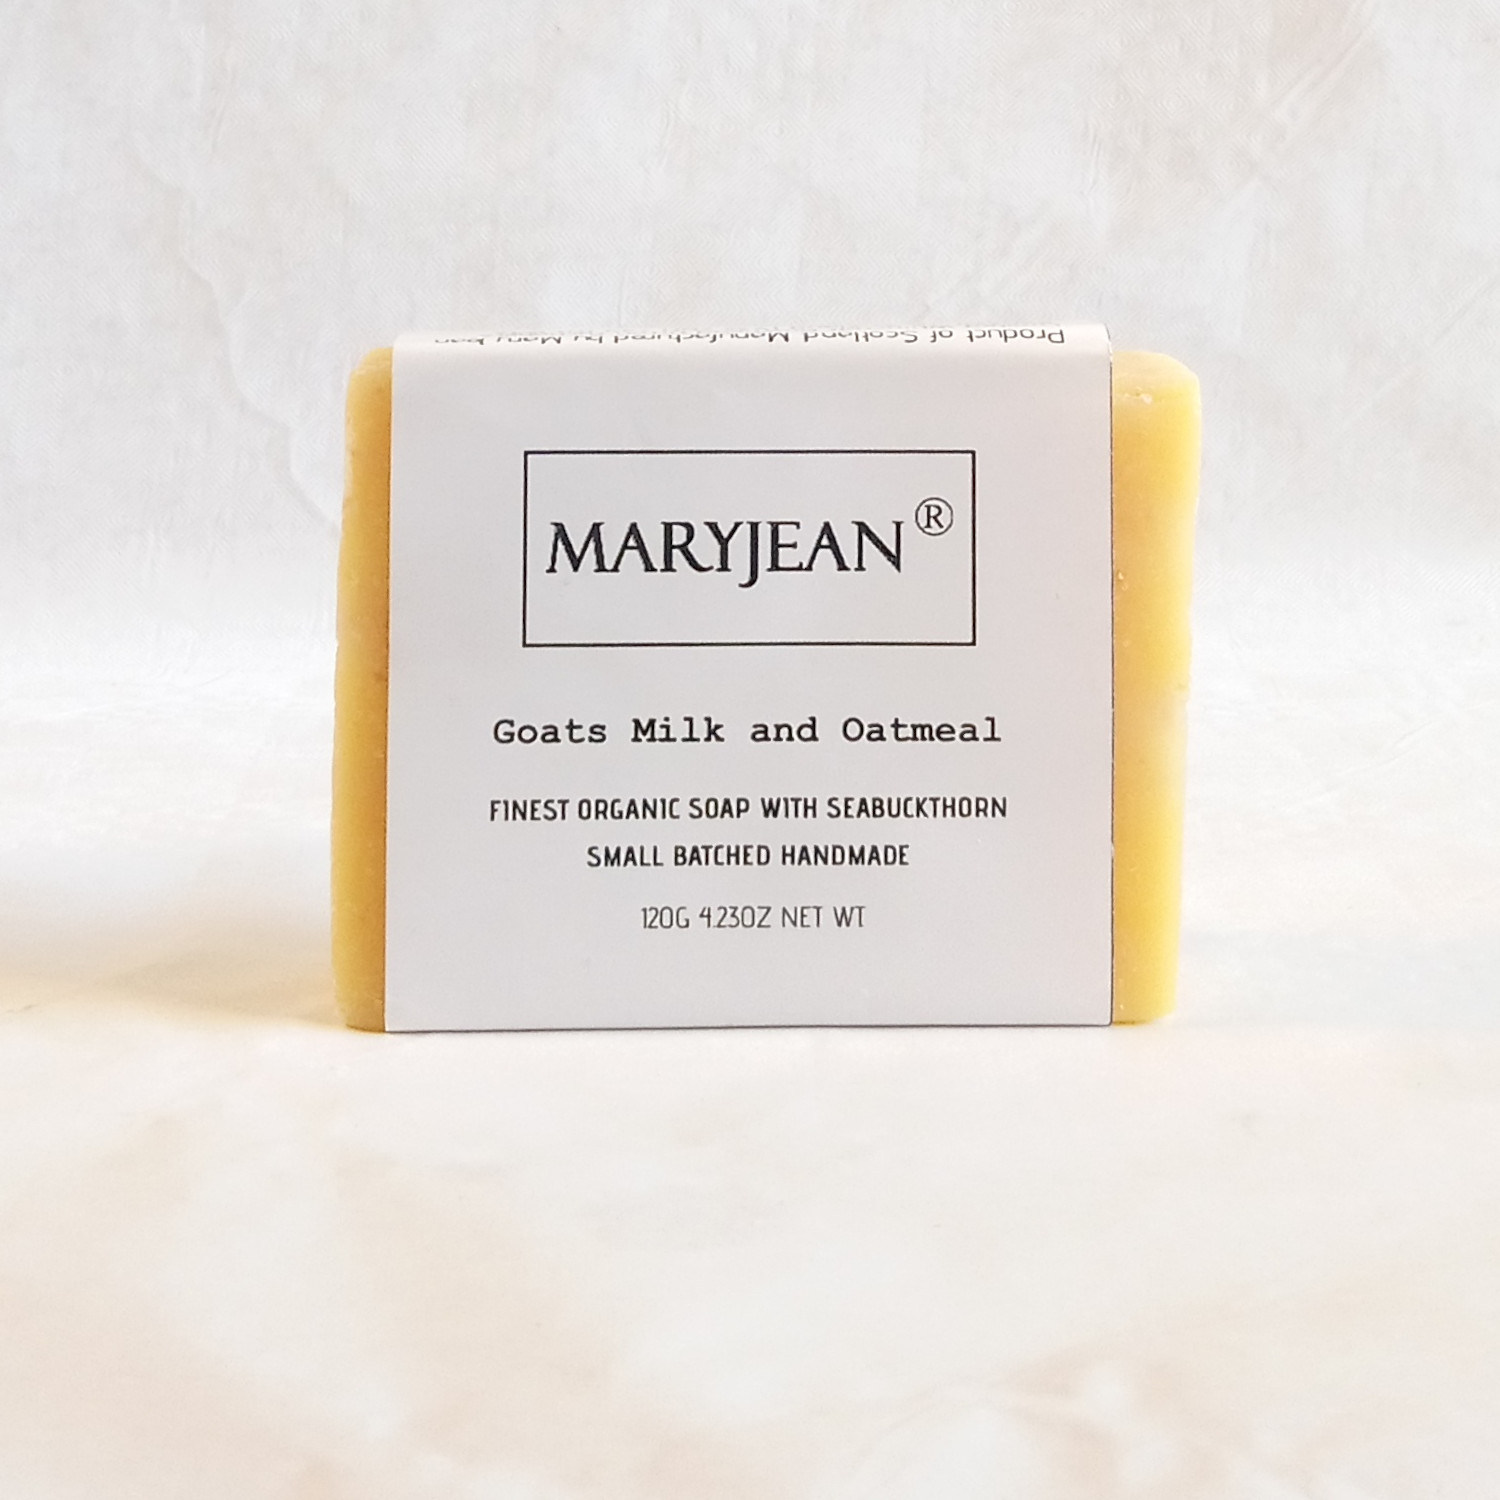 Gently exfoliates and polishing from oats and Goats milk skin damage is repaired boosted with Sea Buckthorn treating mature over 50s aged skin Organic Scottish Exfoliating Body Scrub Soap Handmade With Sea Buckthorn